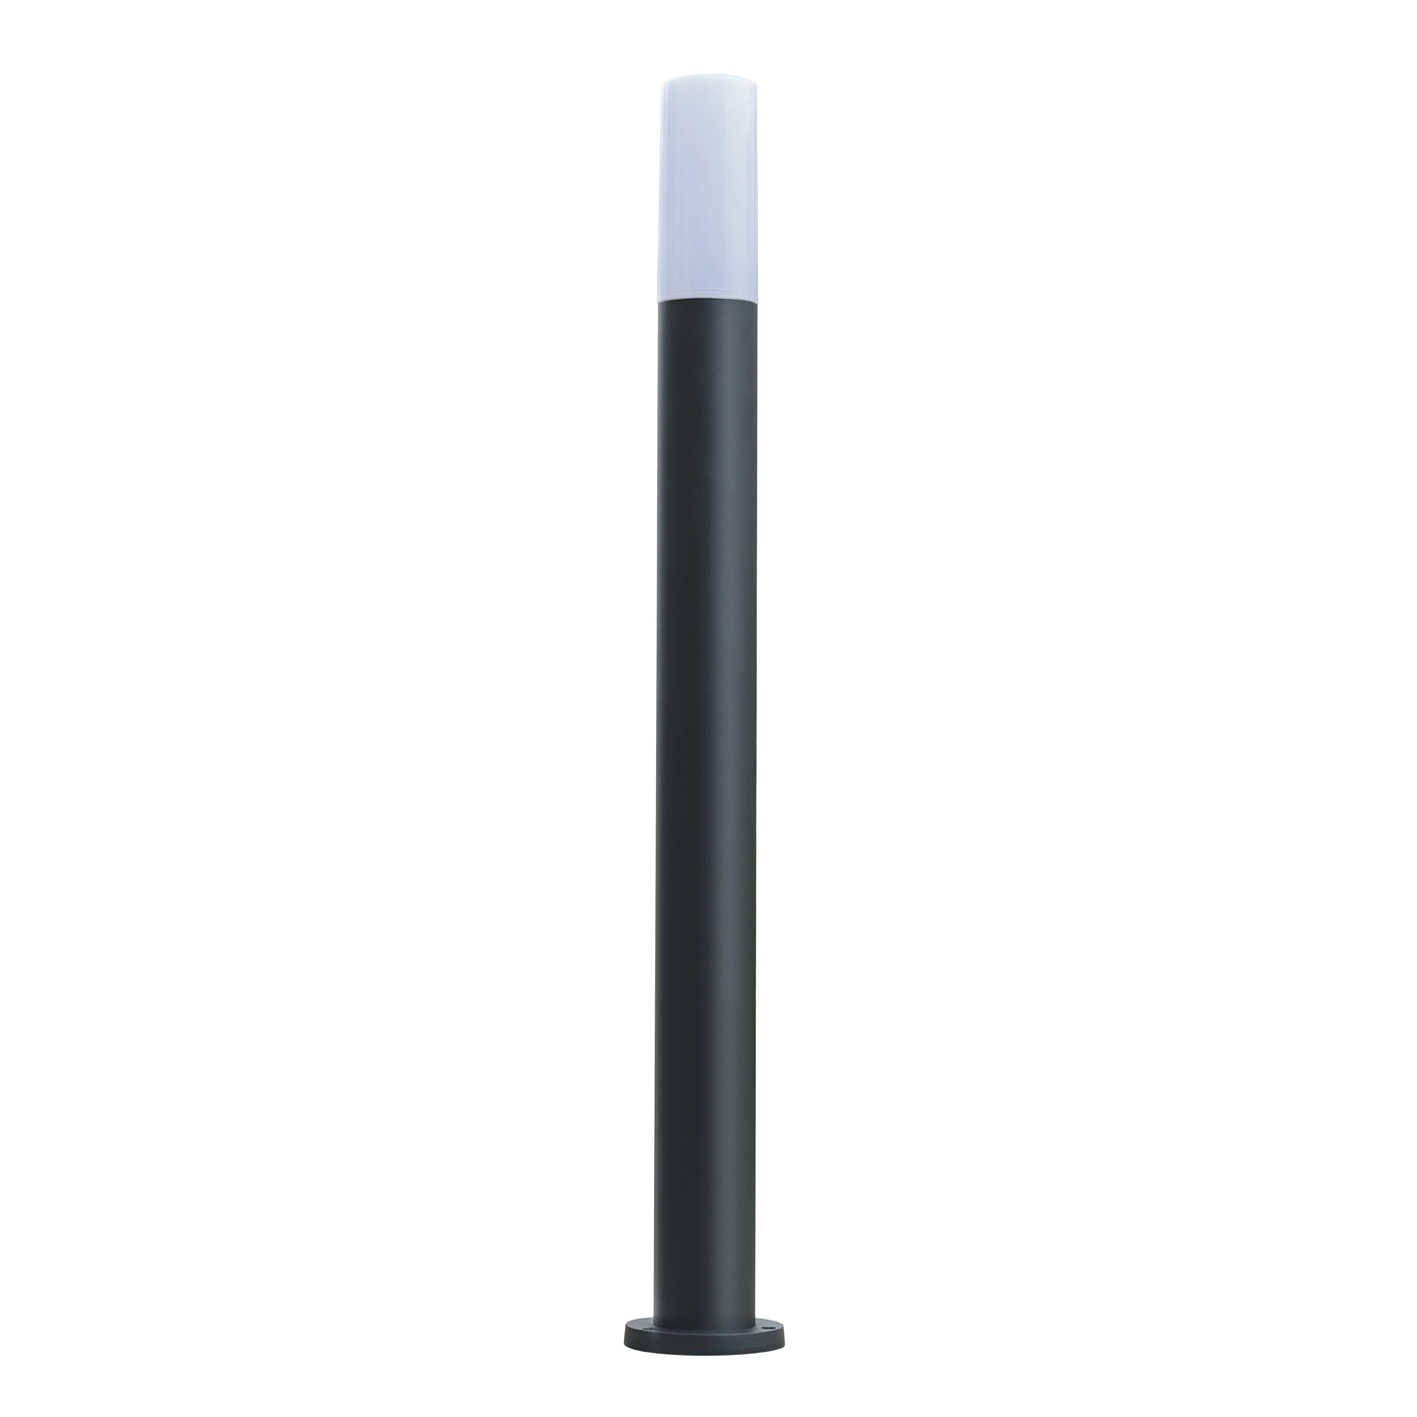 Pole 100cm Lamp Outdoor Garden lamp e27 led Lantern PG-2-100CM-BLACK